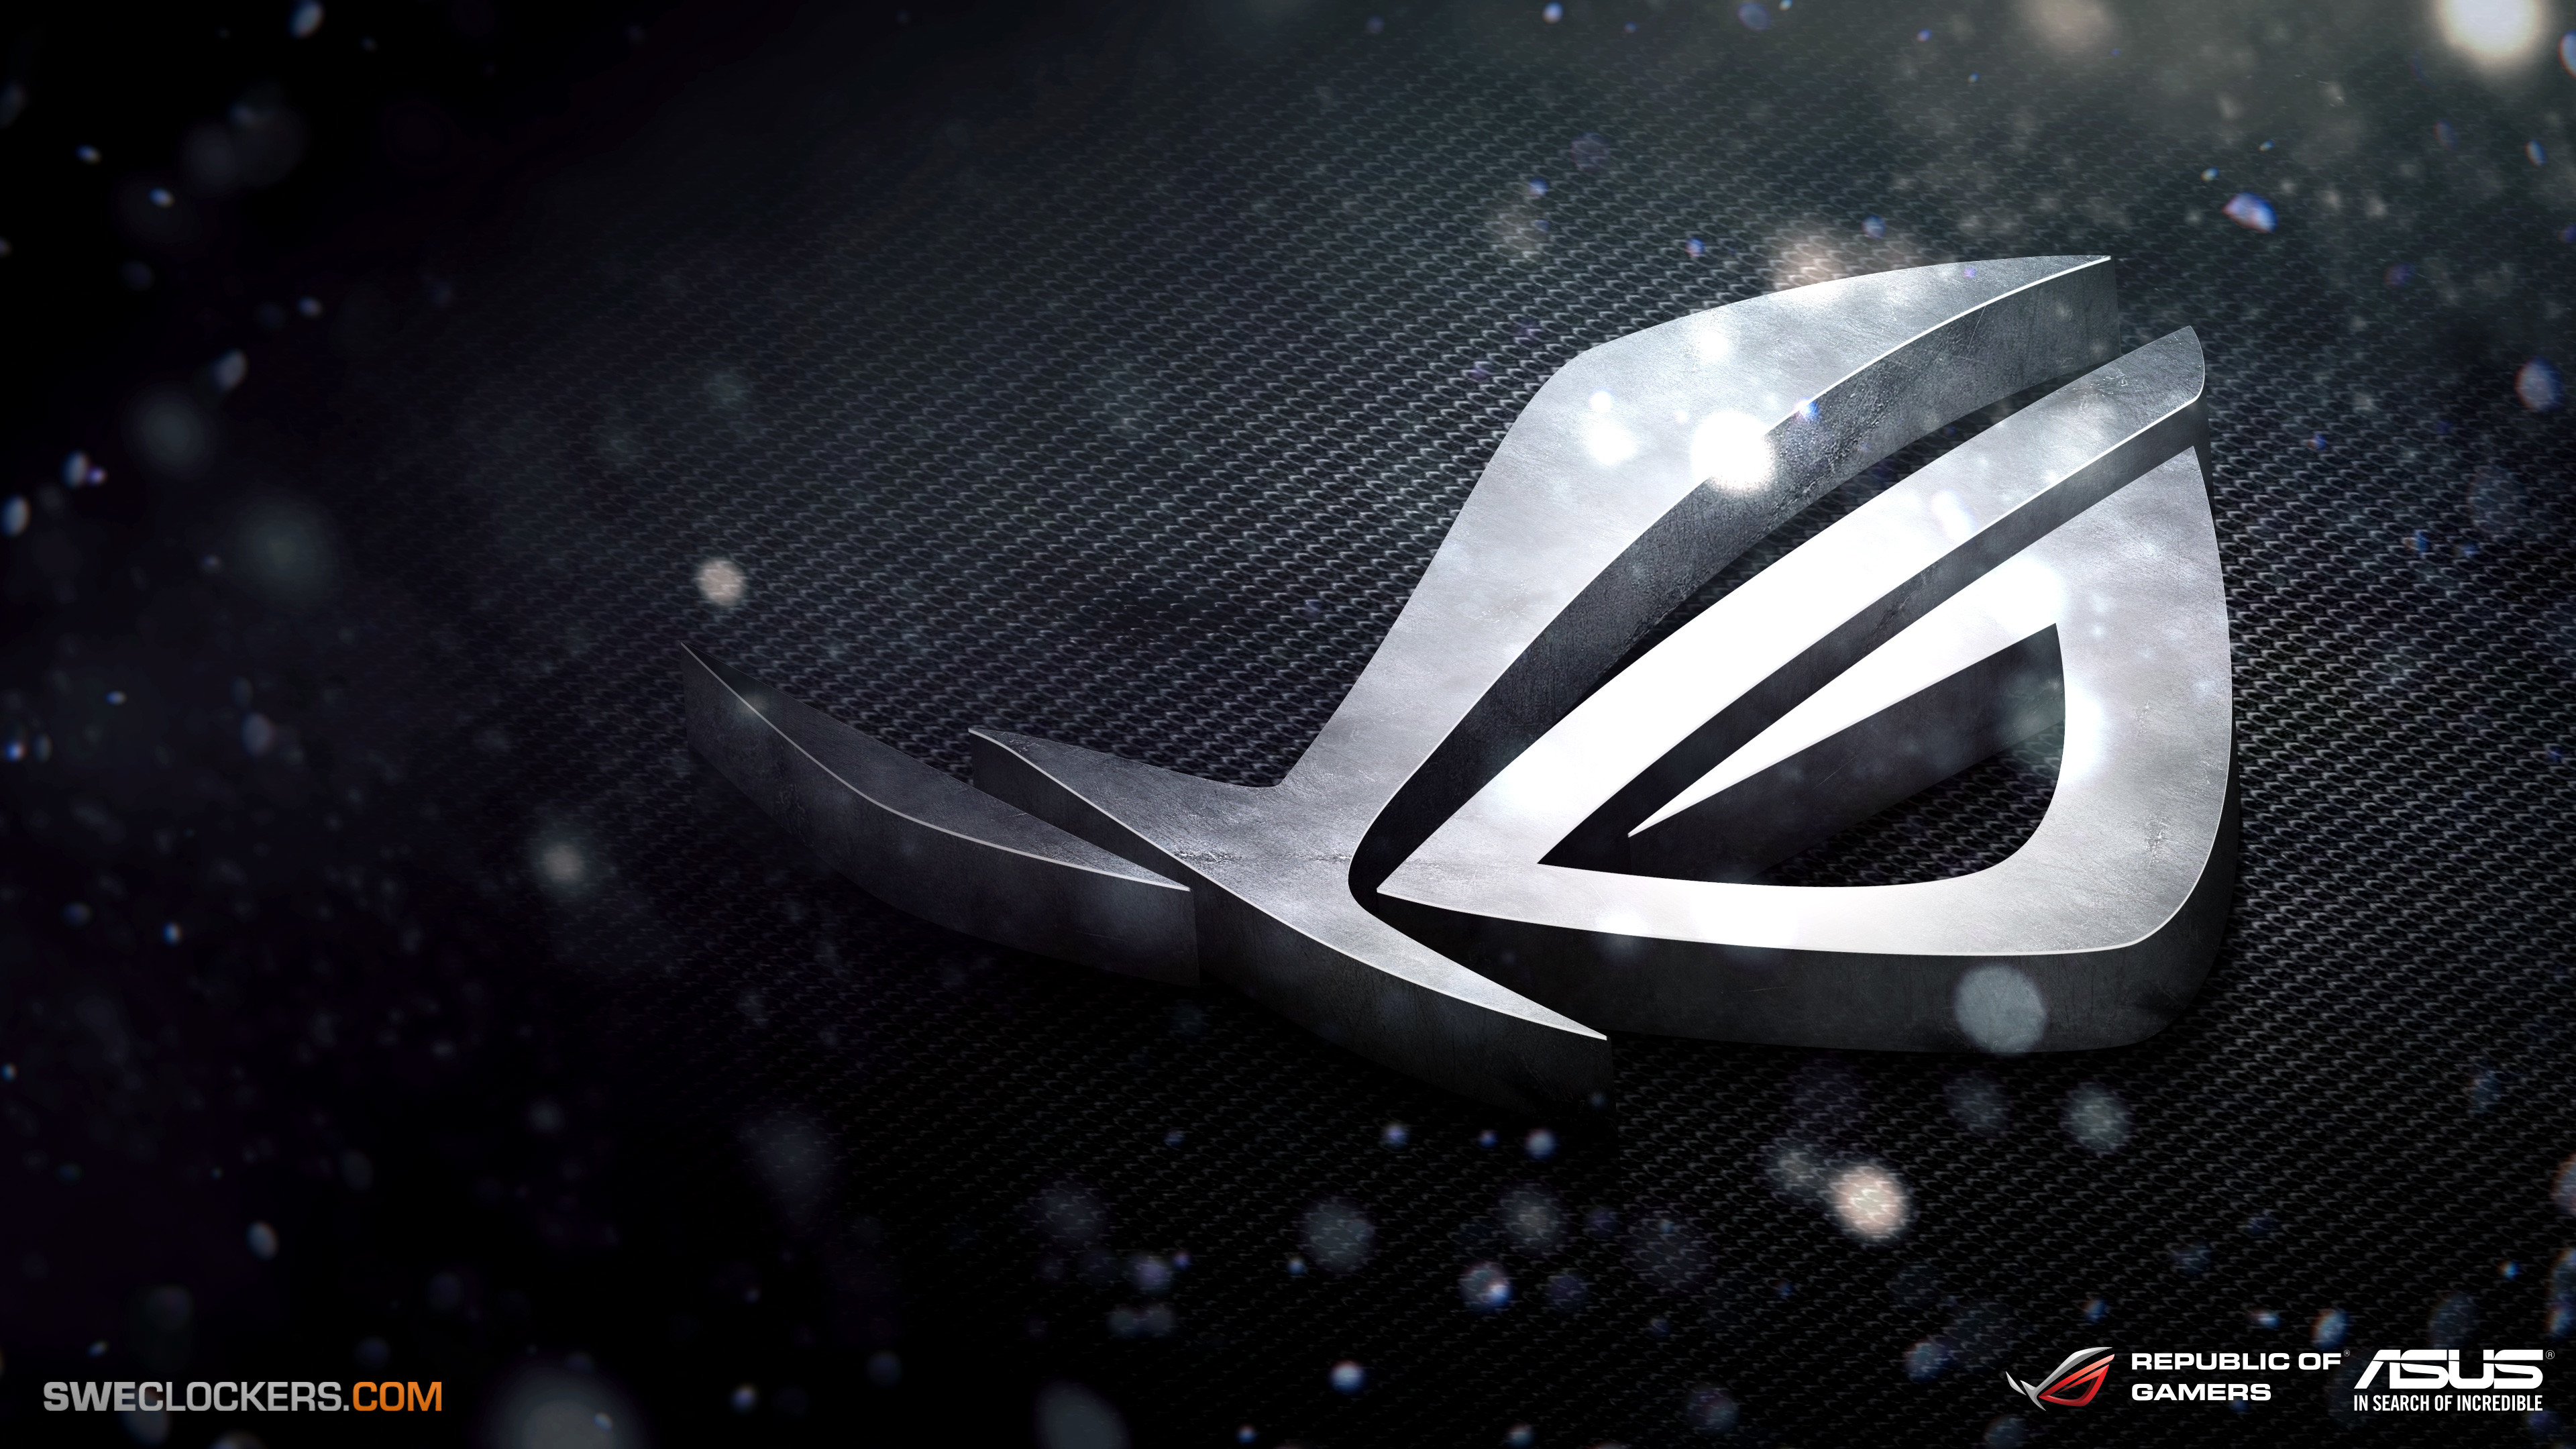 Awesome 4K ROG Wallpapers